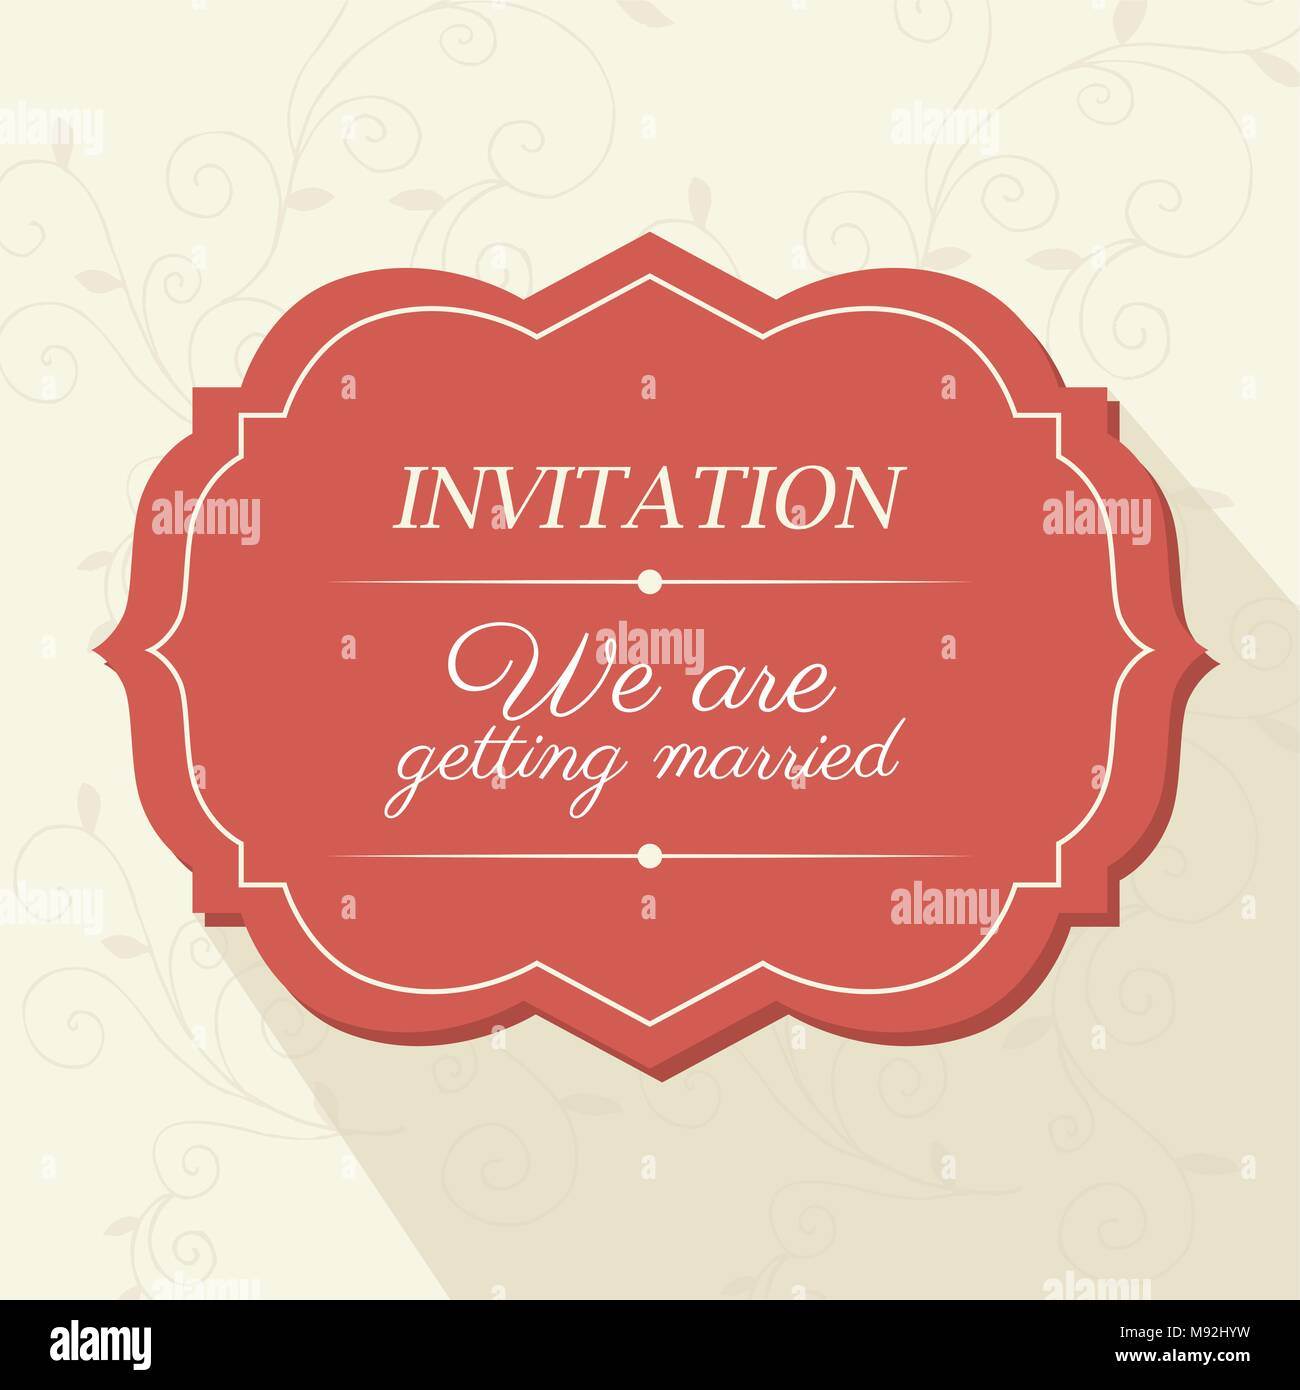 Wedding Invitation Card Cute Couple Love Married Stock Photos ...